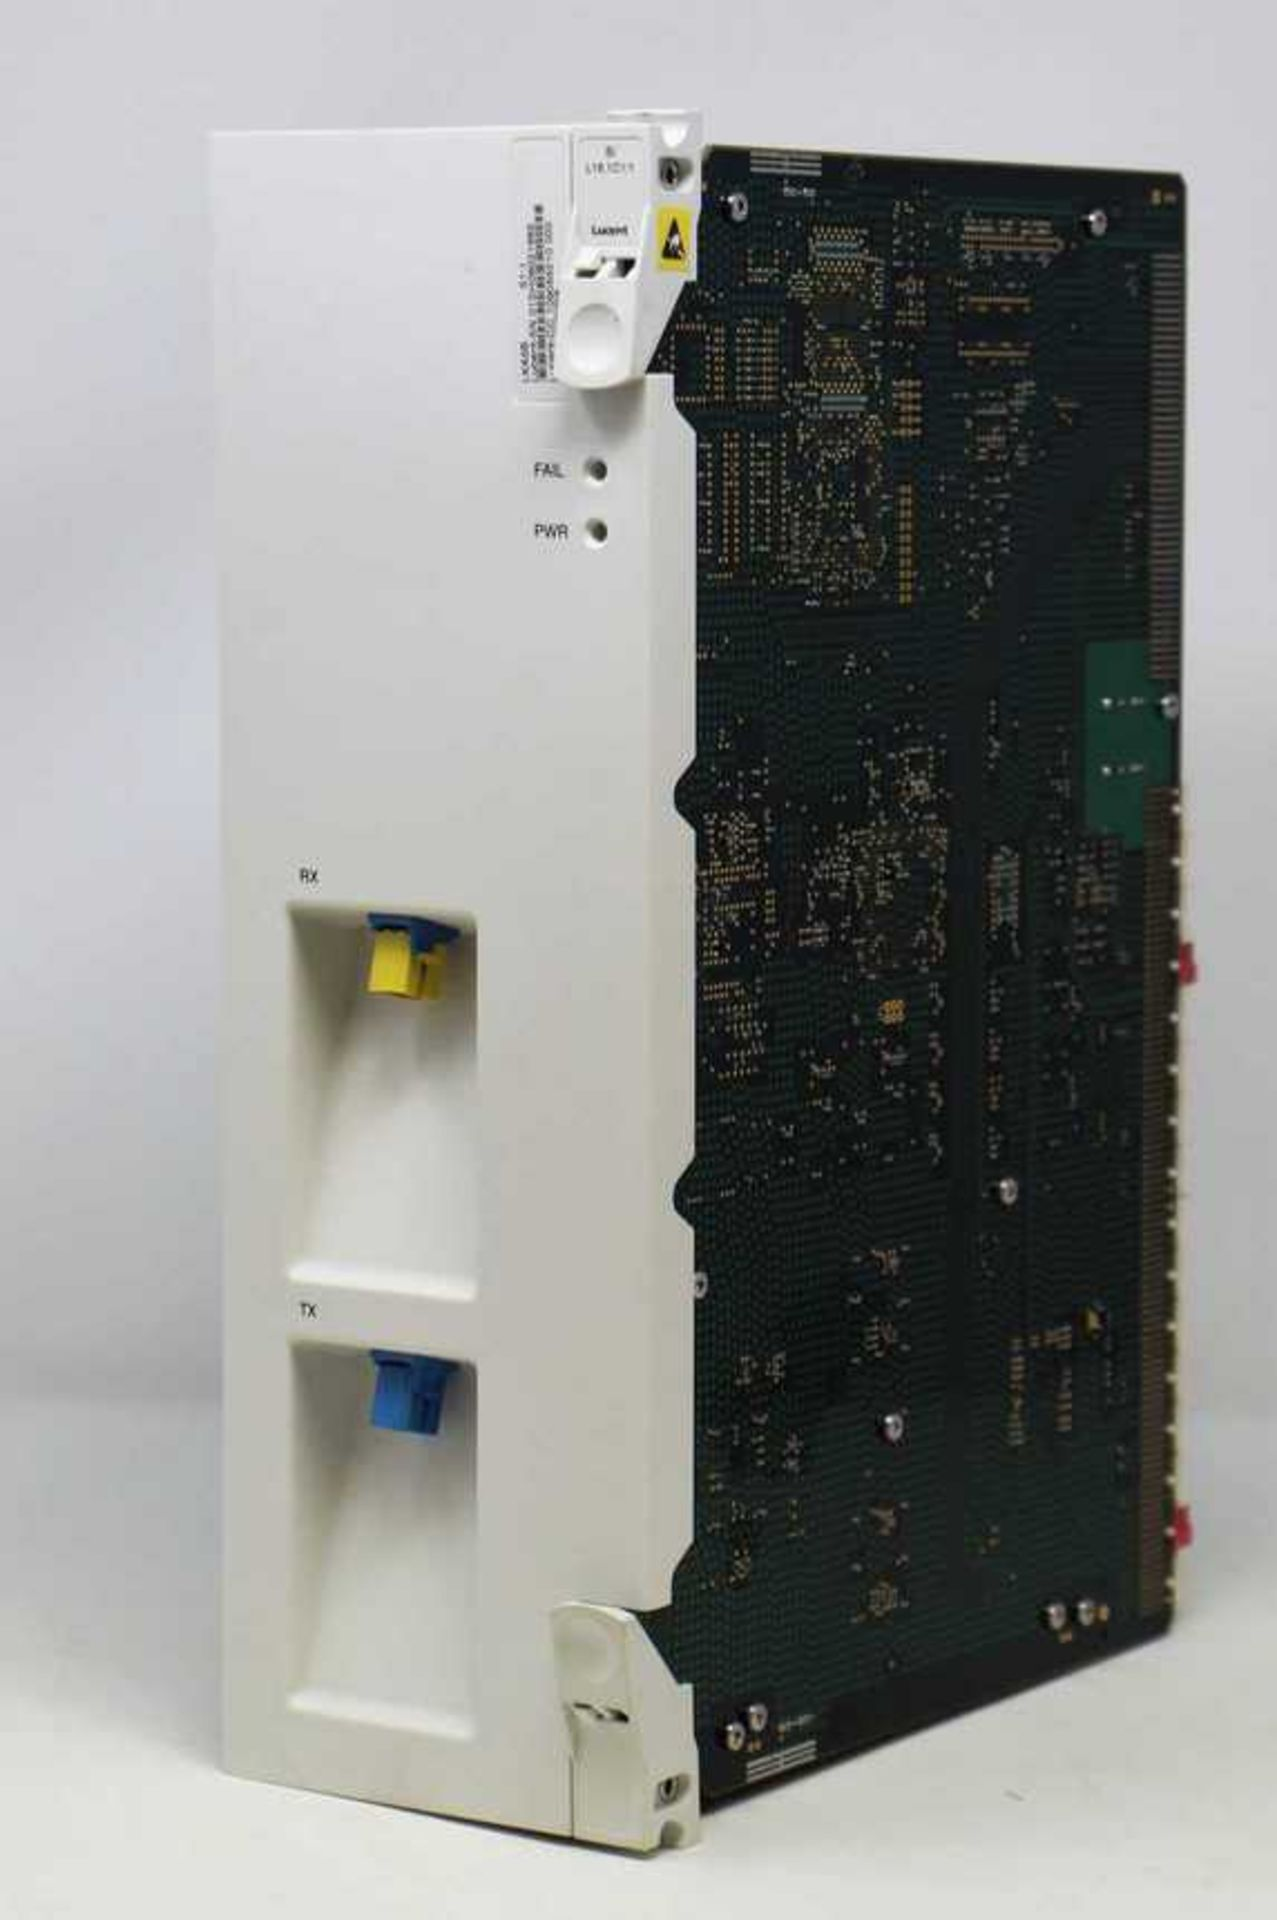 A pre-owned Lucent SI L16.1C1/1 LKA5B S1:1 Optical Line Circuit Pack (CC: 109055210 000) (